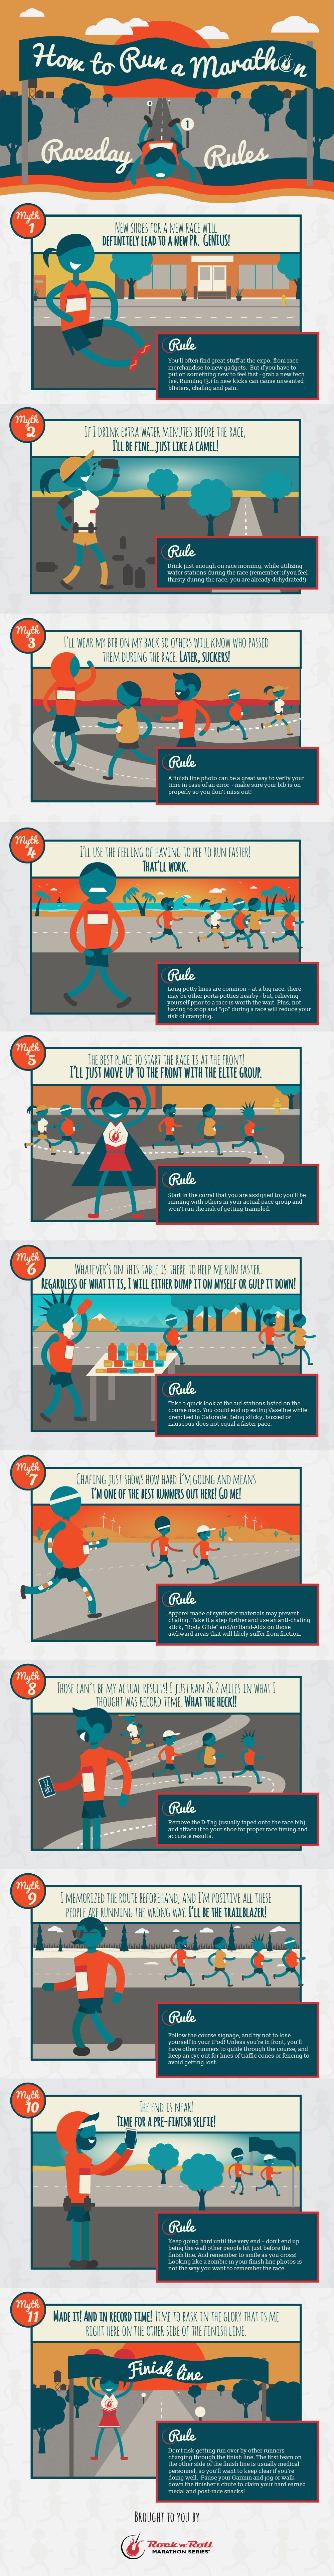 How to Run a Marathon: Raceday Rules #infographic